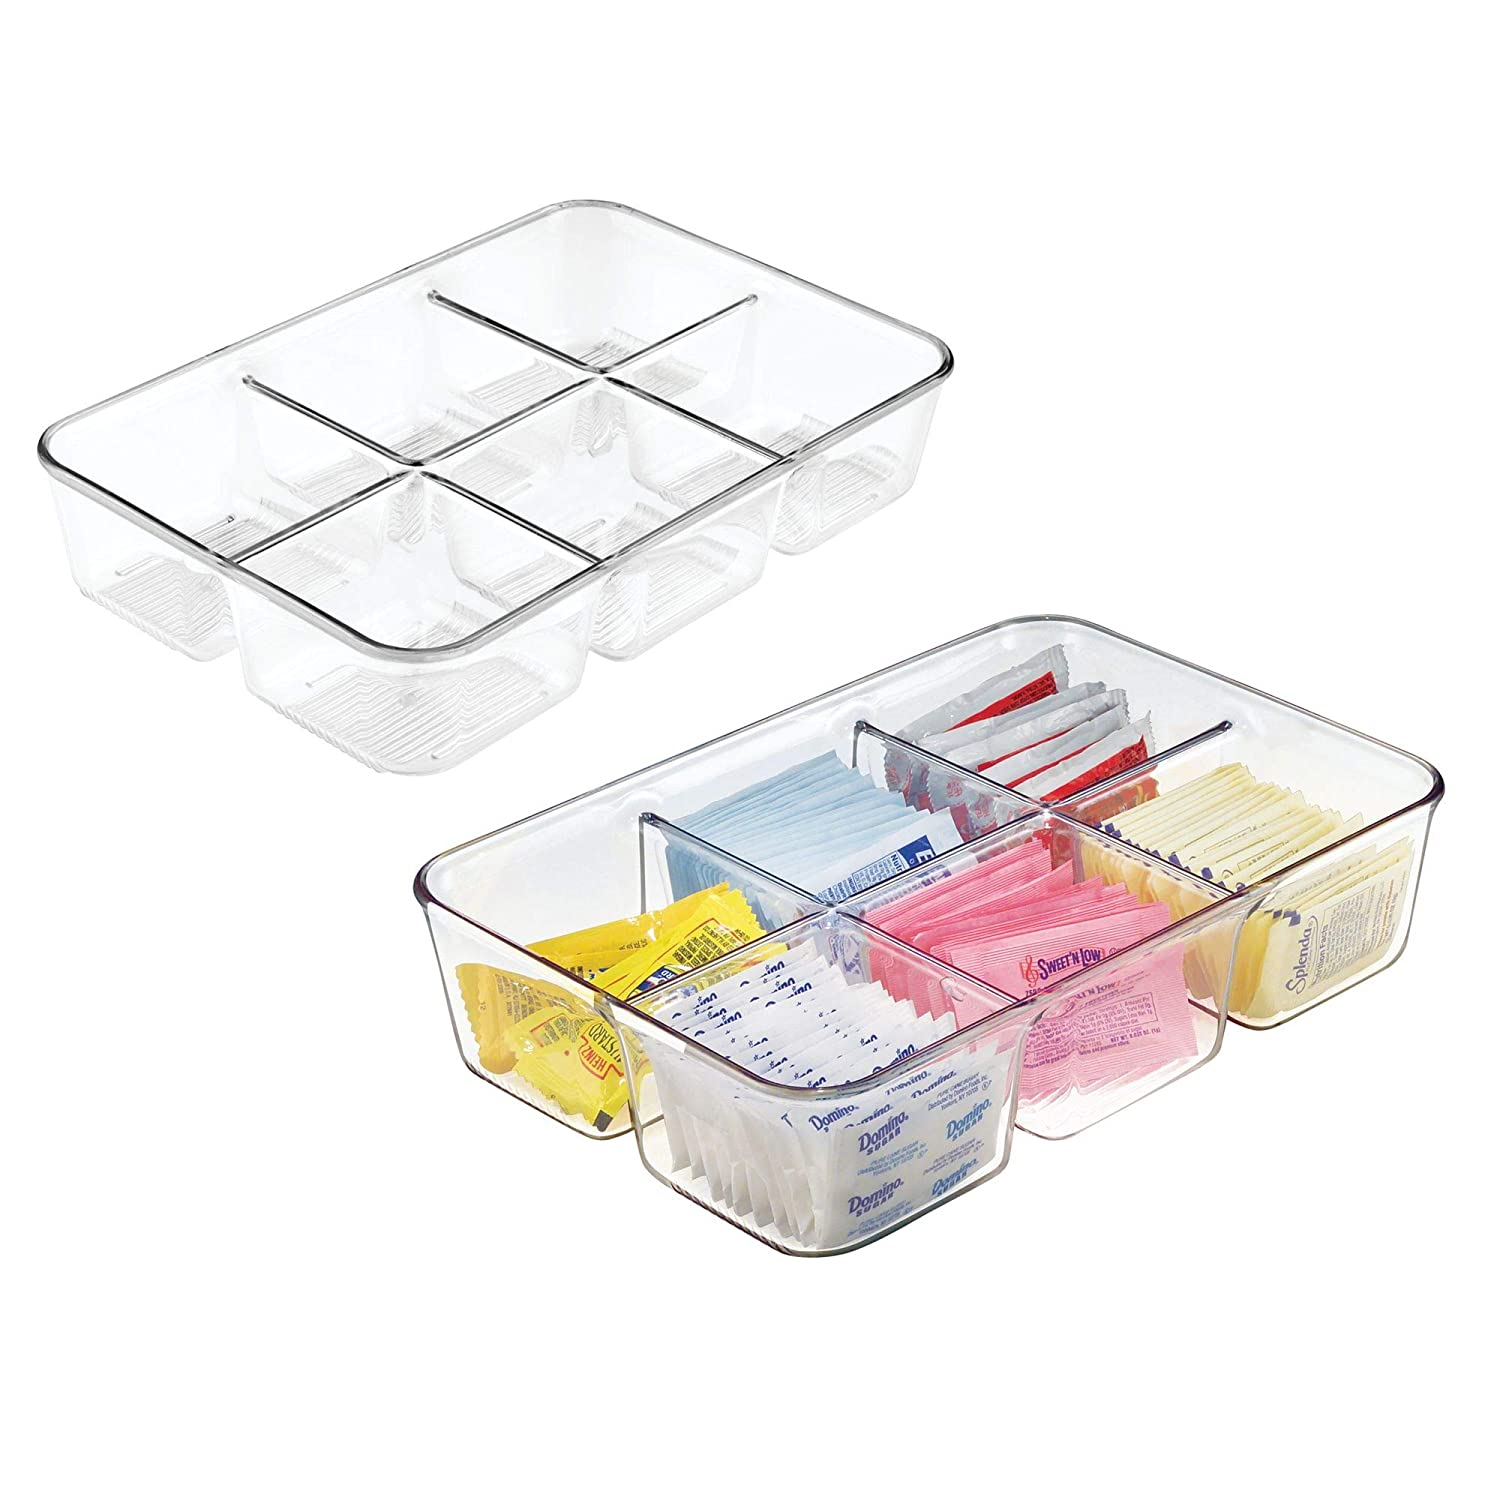 mDesign Set of 2 Kitchen Storage for Spices with 6 Compartments - Dynamic Kitchen Accessories - Spice Holder Perfect for Tea, Coffee, Sugar Sachets, and More - Clear MetroDecor